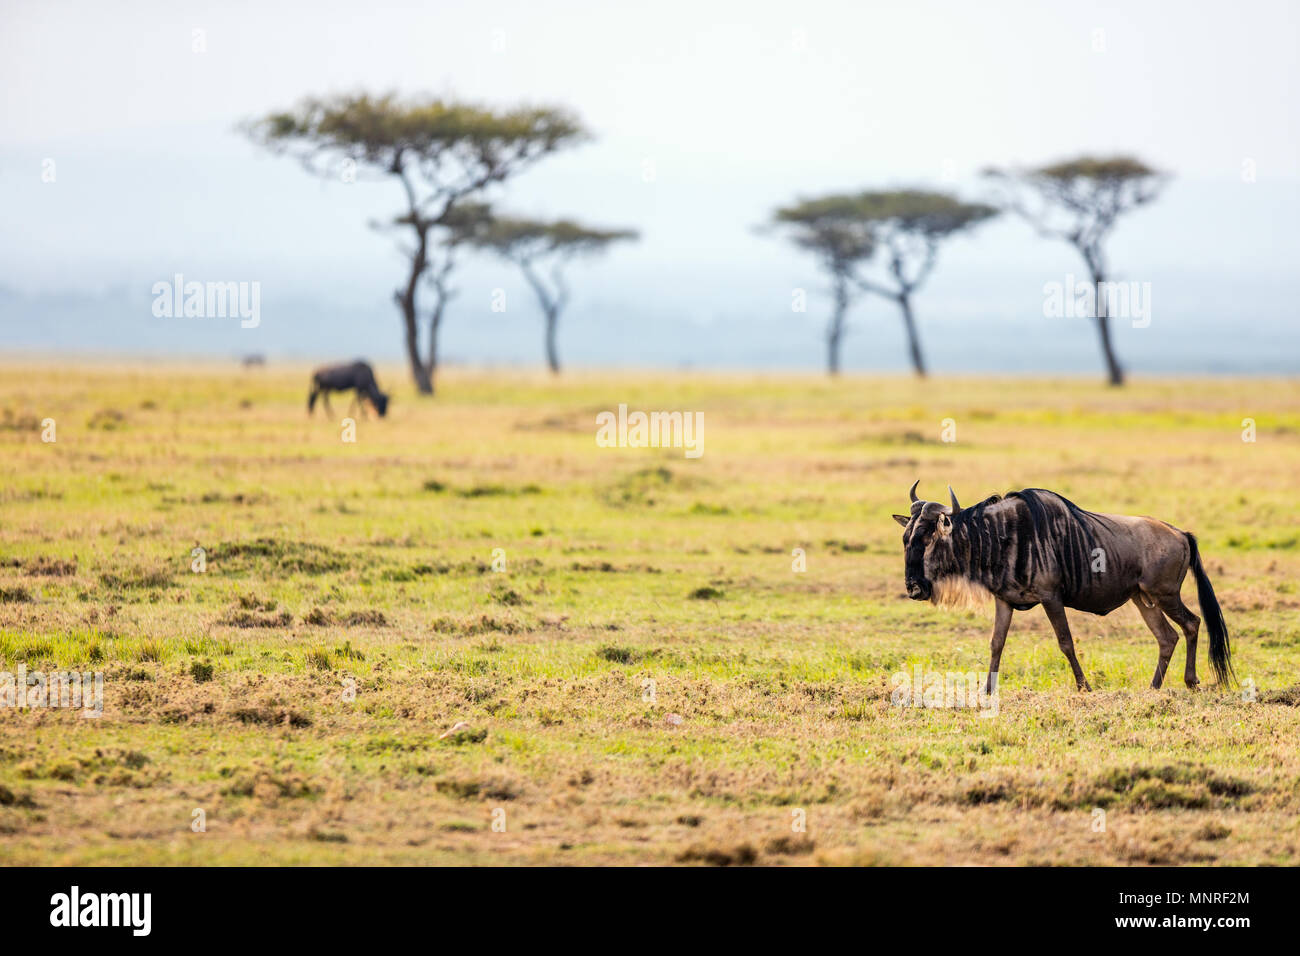 Gnous dans le parc national de Masai Mara au Kenya Photo Stock